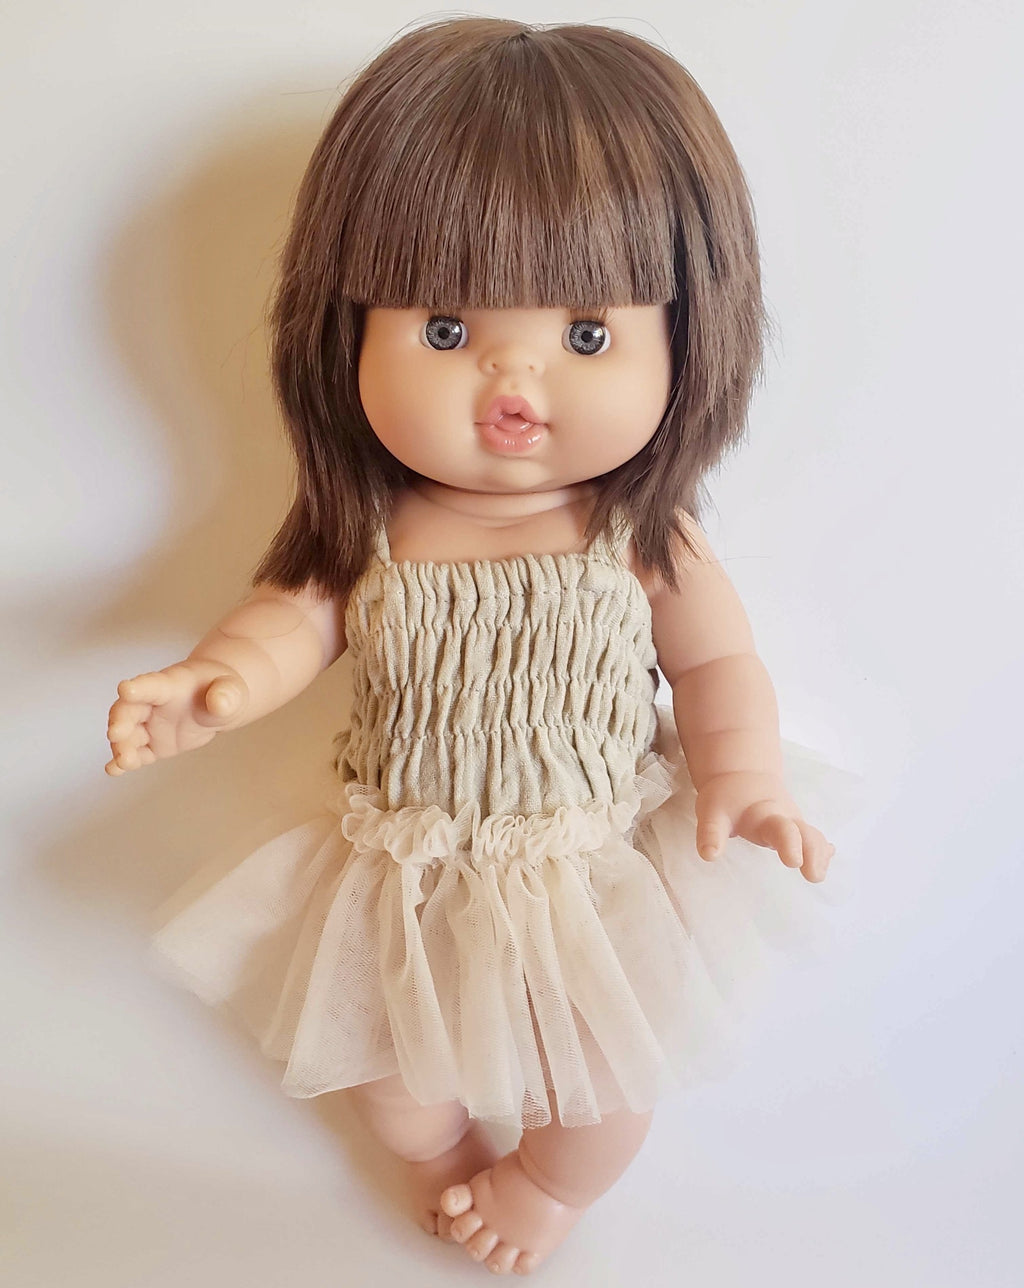 Brunette baby doll with hair, the newest minikane Chloe doll.